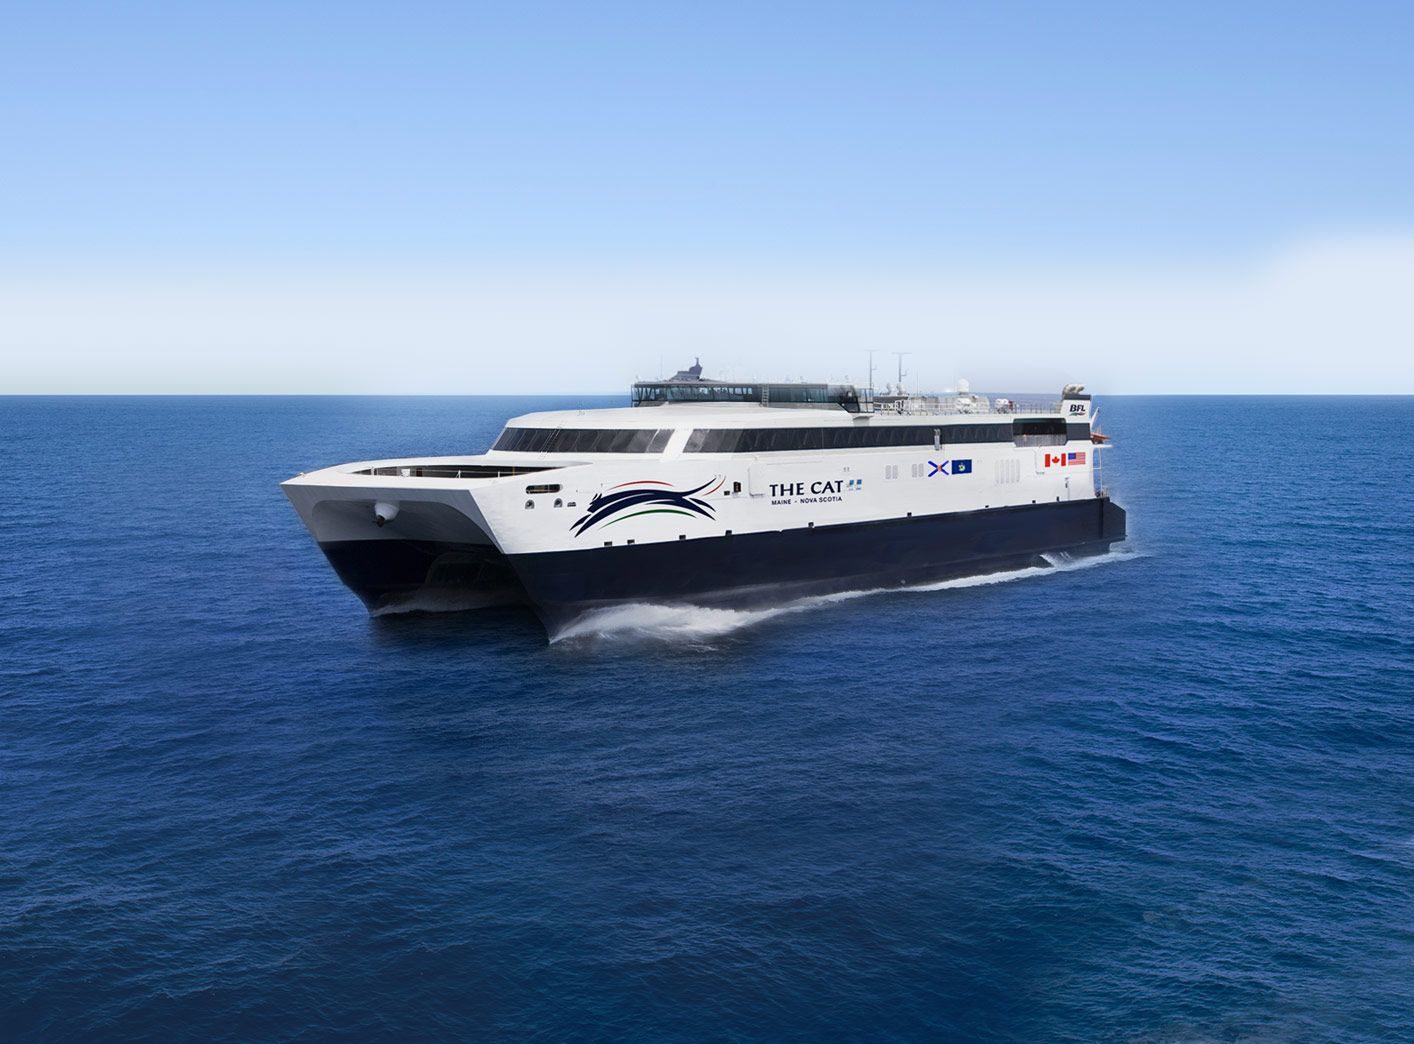 The CAT is back! Service between Portland, Maine and